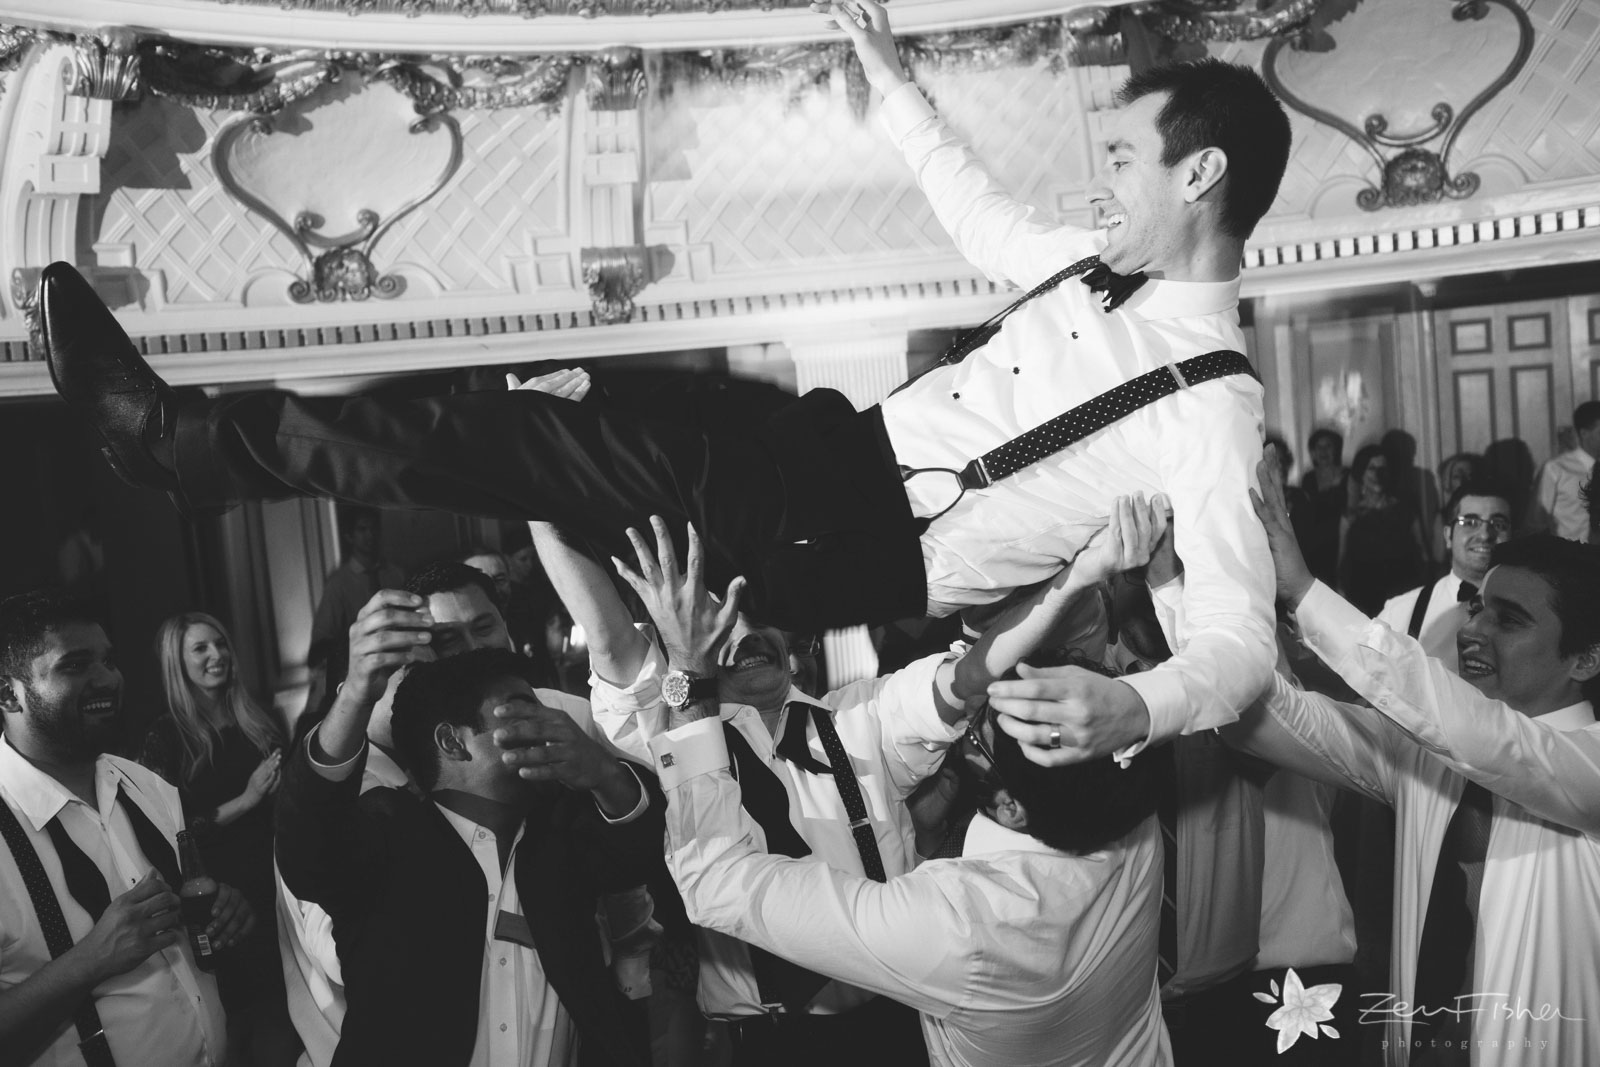 Epic shot of the groom crowdsurfing on the dance floor, in black and white.